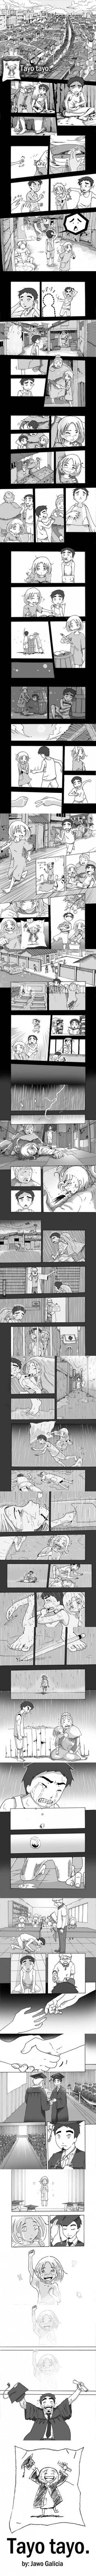 Ah f**k right in the feels: